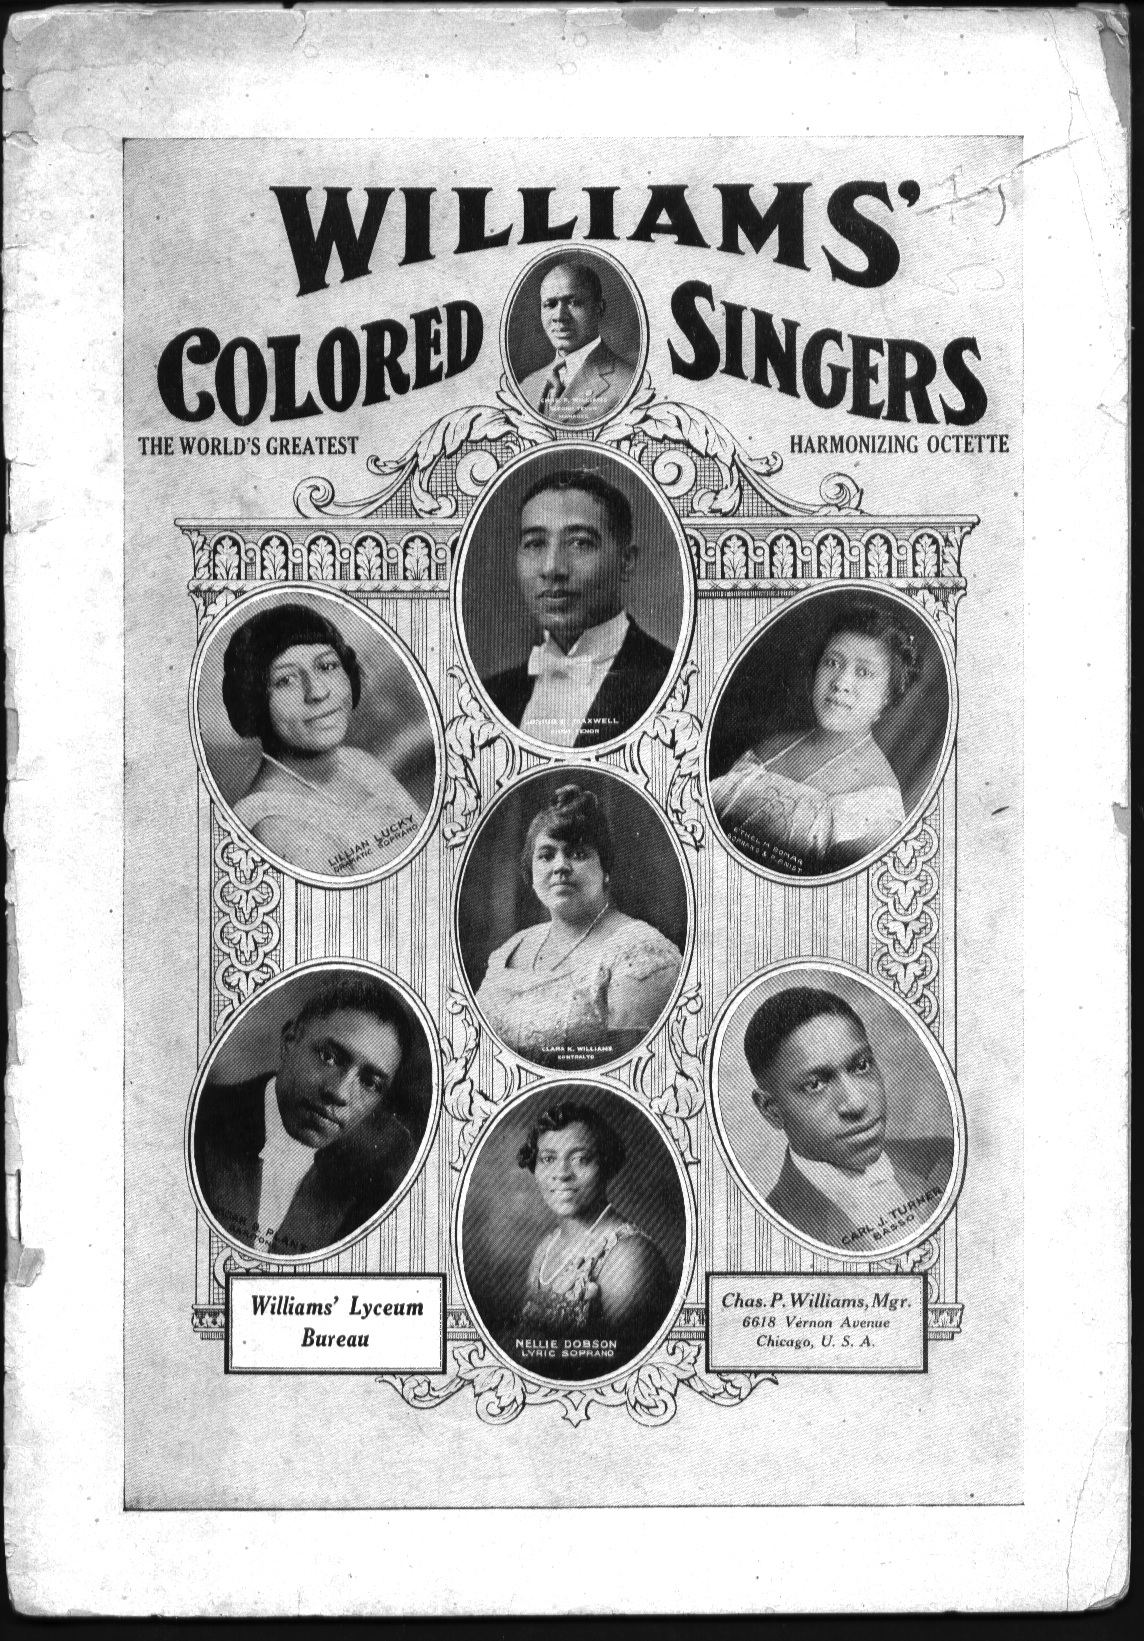 1924 Williams' Colored Singers